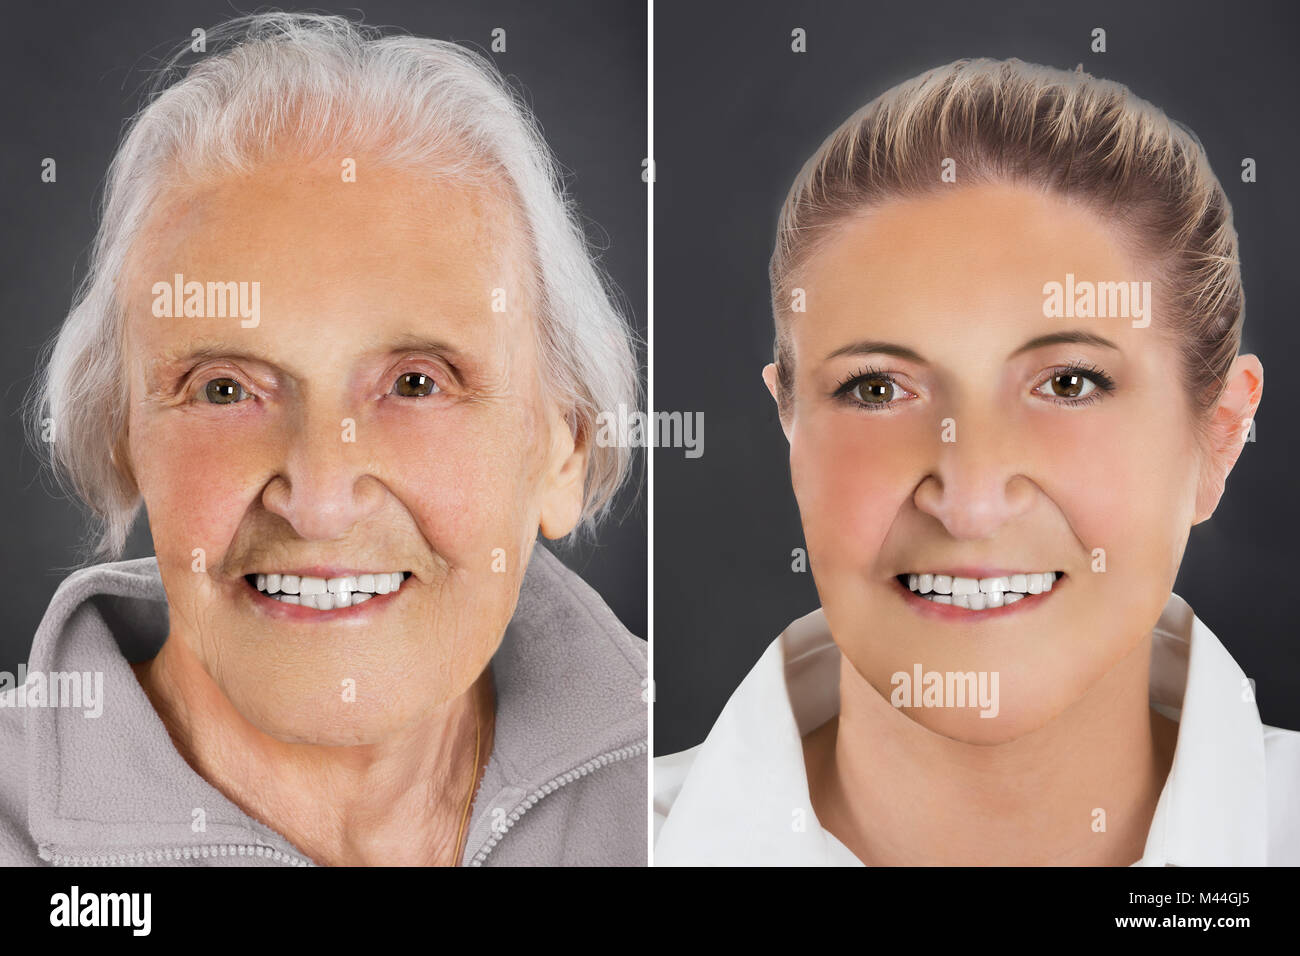 Multiple image showing ageing process of woman from young to senior over gray background - Stock Image